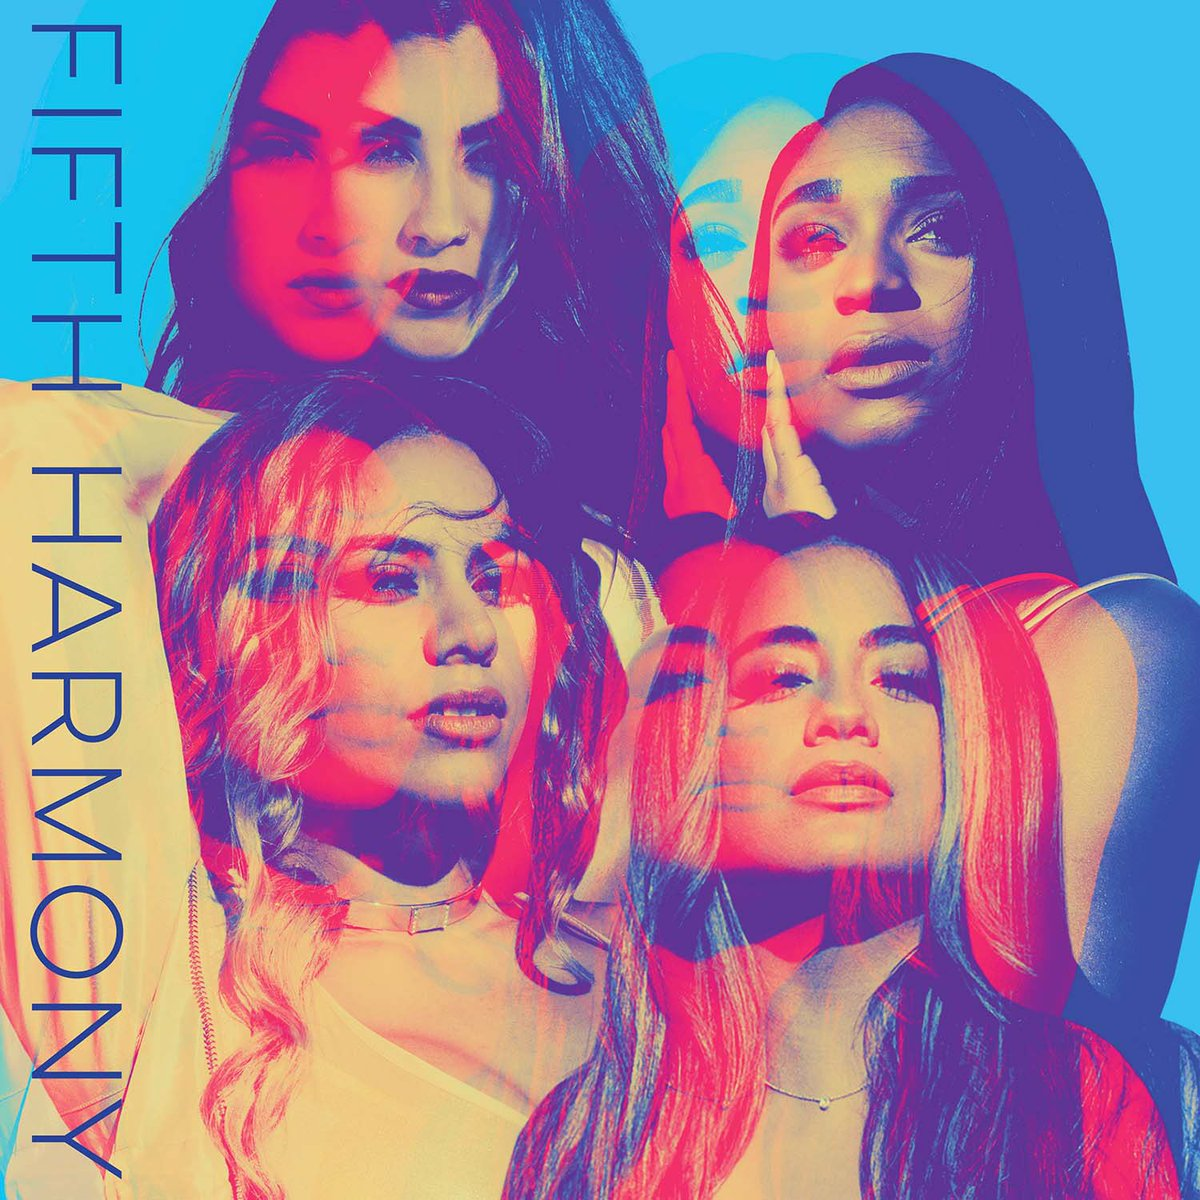 8.25 #FifthHarmony https://t.co/pSP9CJld...